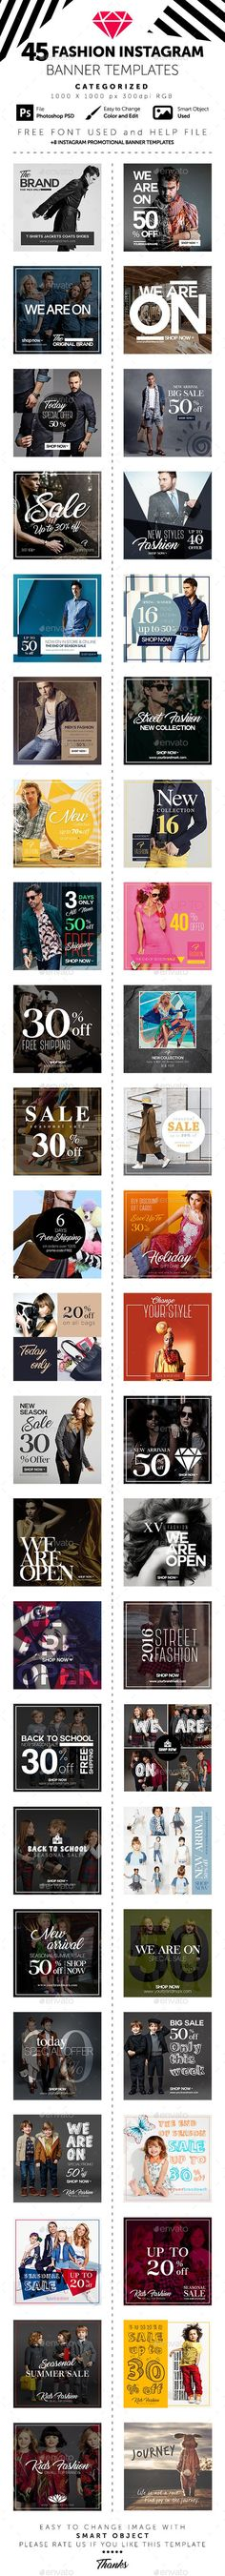 45 Fashion Instagram Banner Templates  • Only available here ➝ http://graphicriver.net/item/45-fashion-instagram-banner-templates/16334322?ref=pxcr: